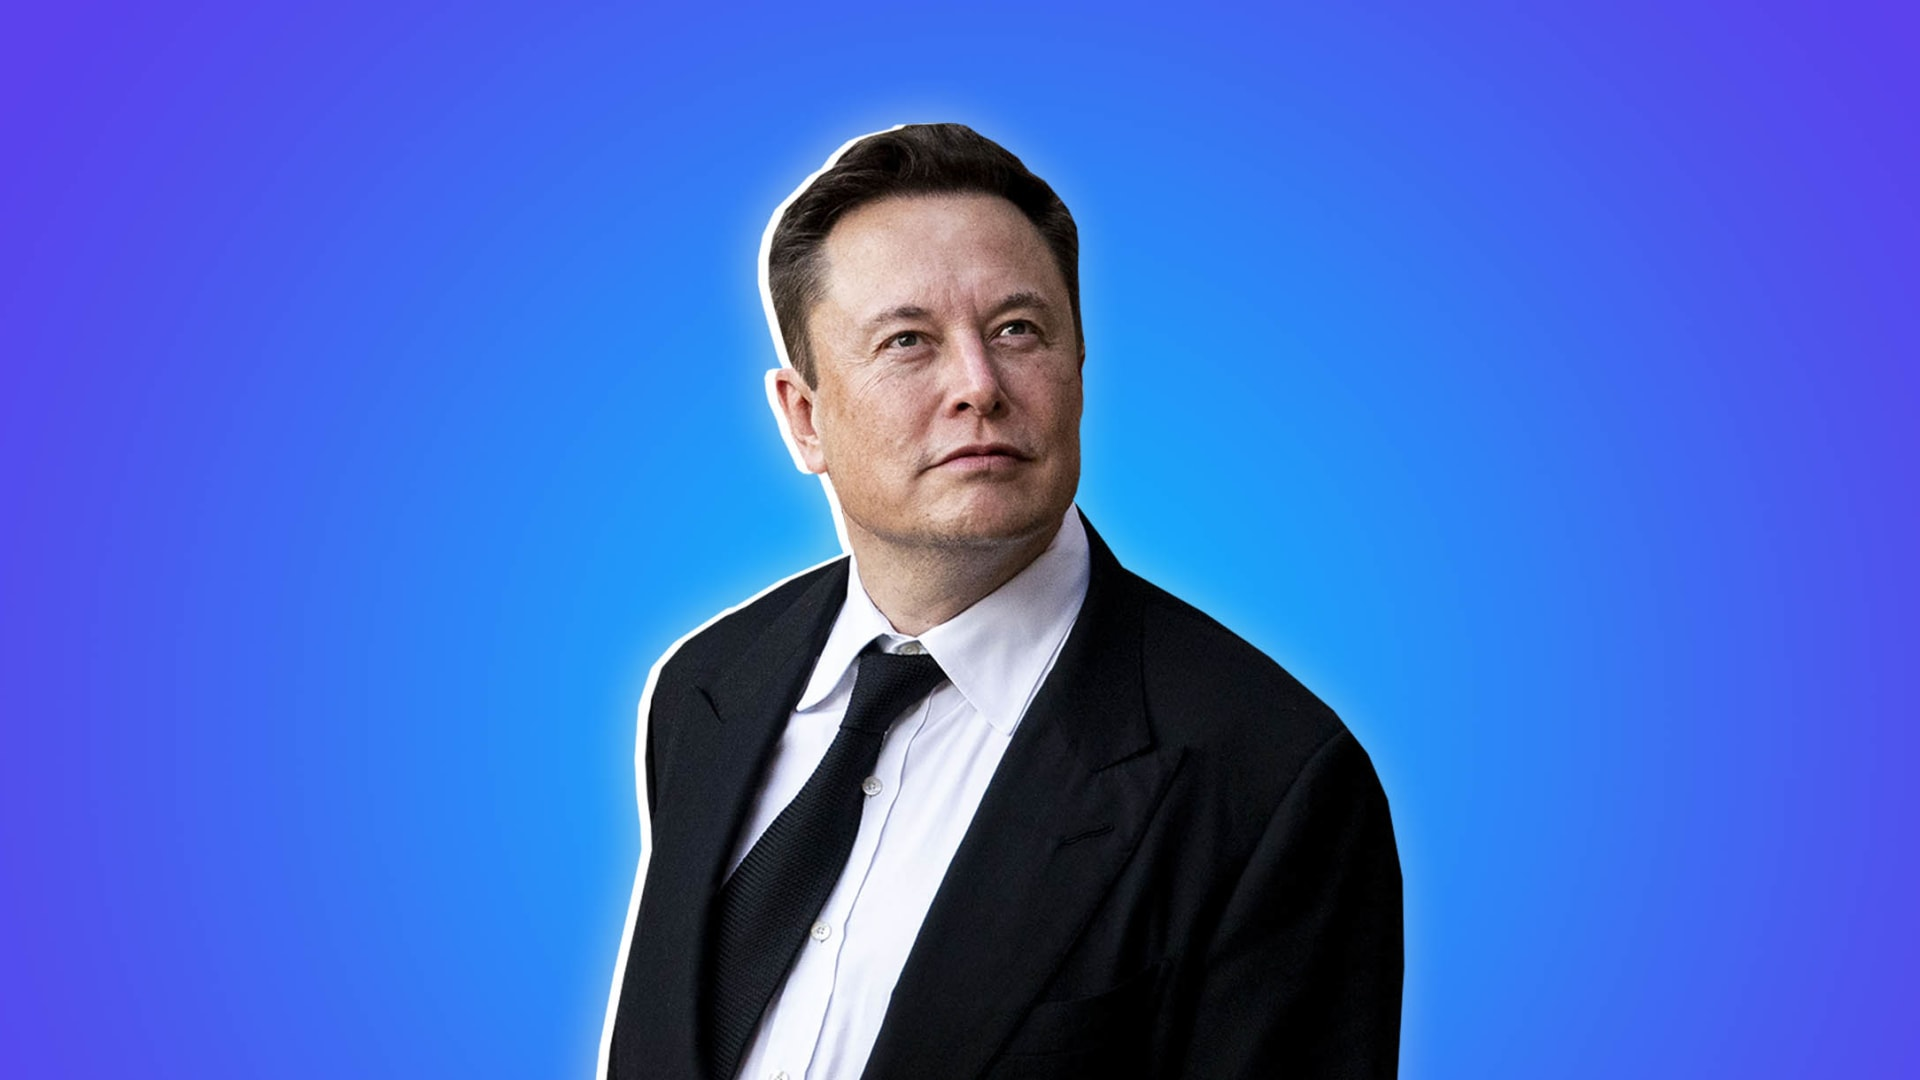 Elon Musk's New Tesla Recruiting Strategy: A Day to Show Off Artificial Intelligence